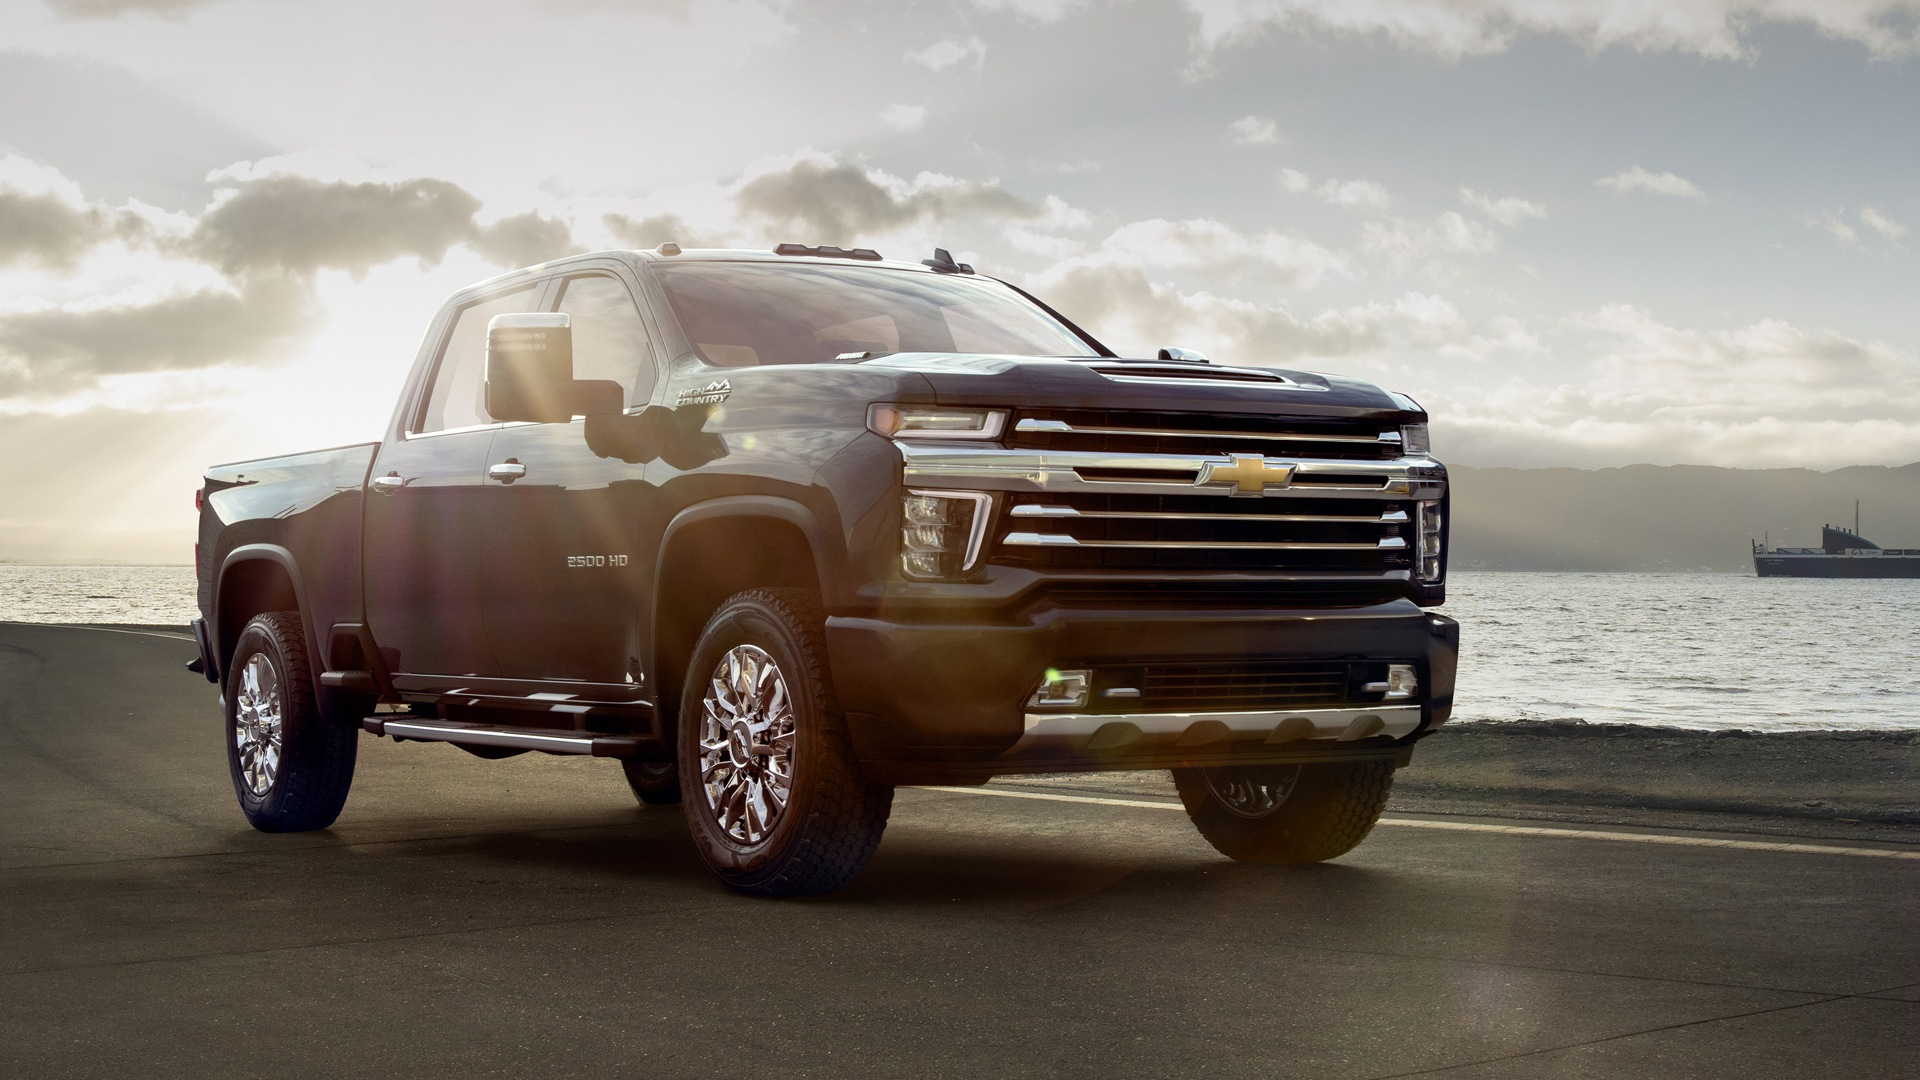 52 New 2020 Chevy Duramax Redesign and Concept